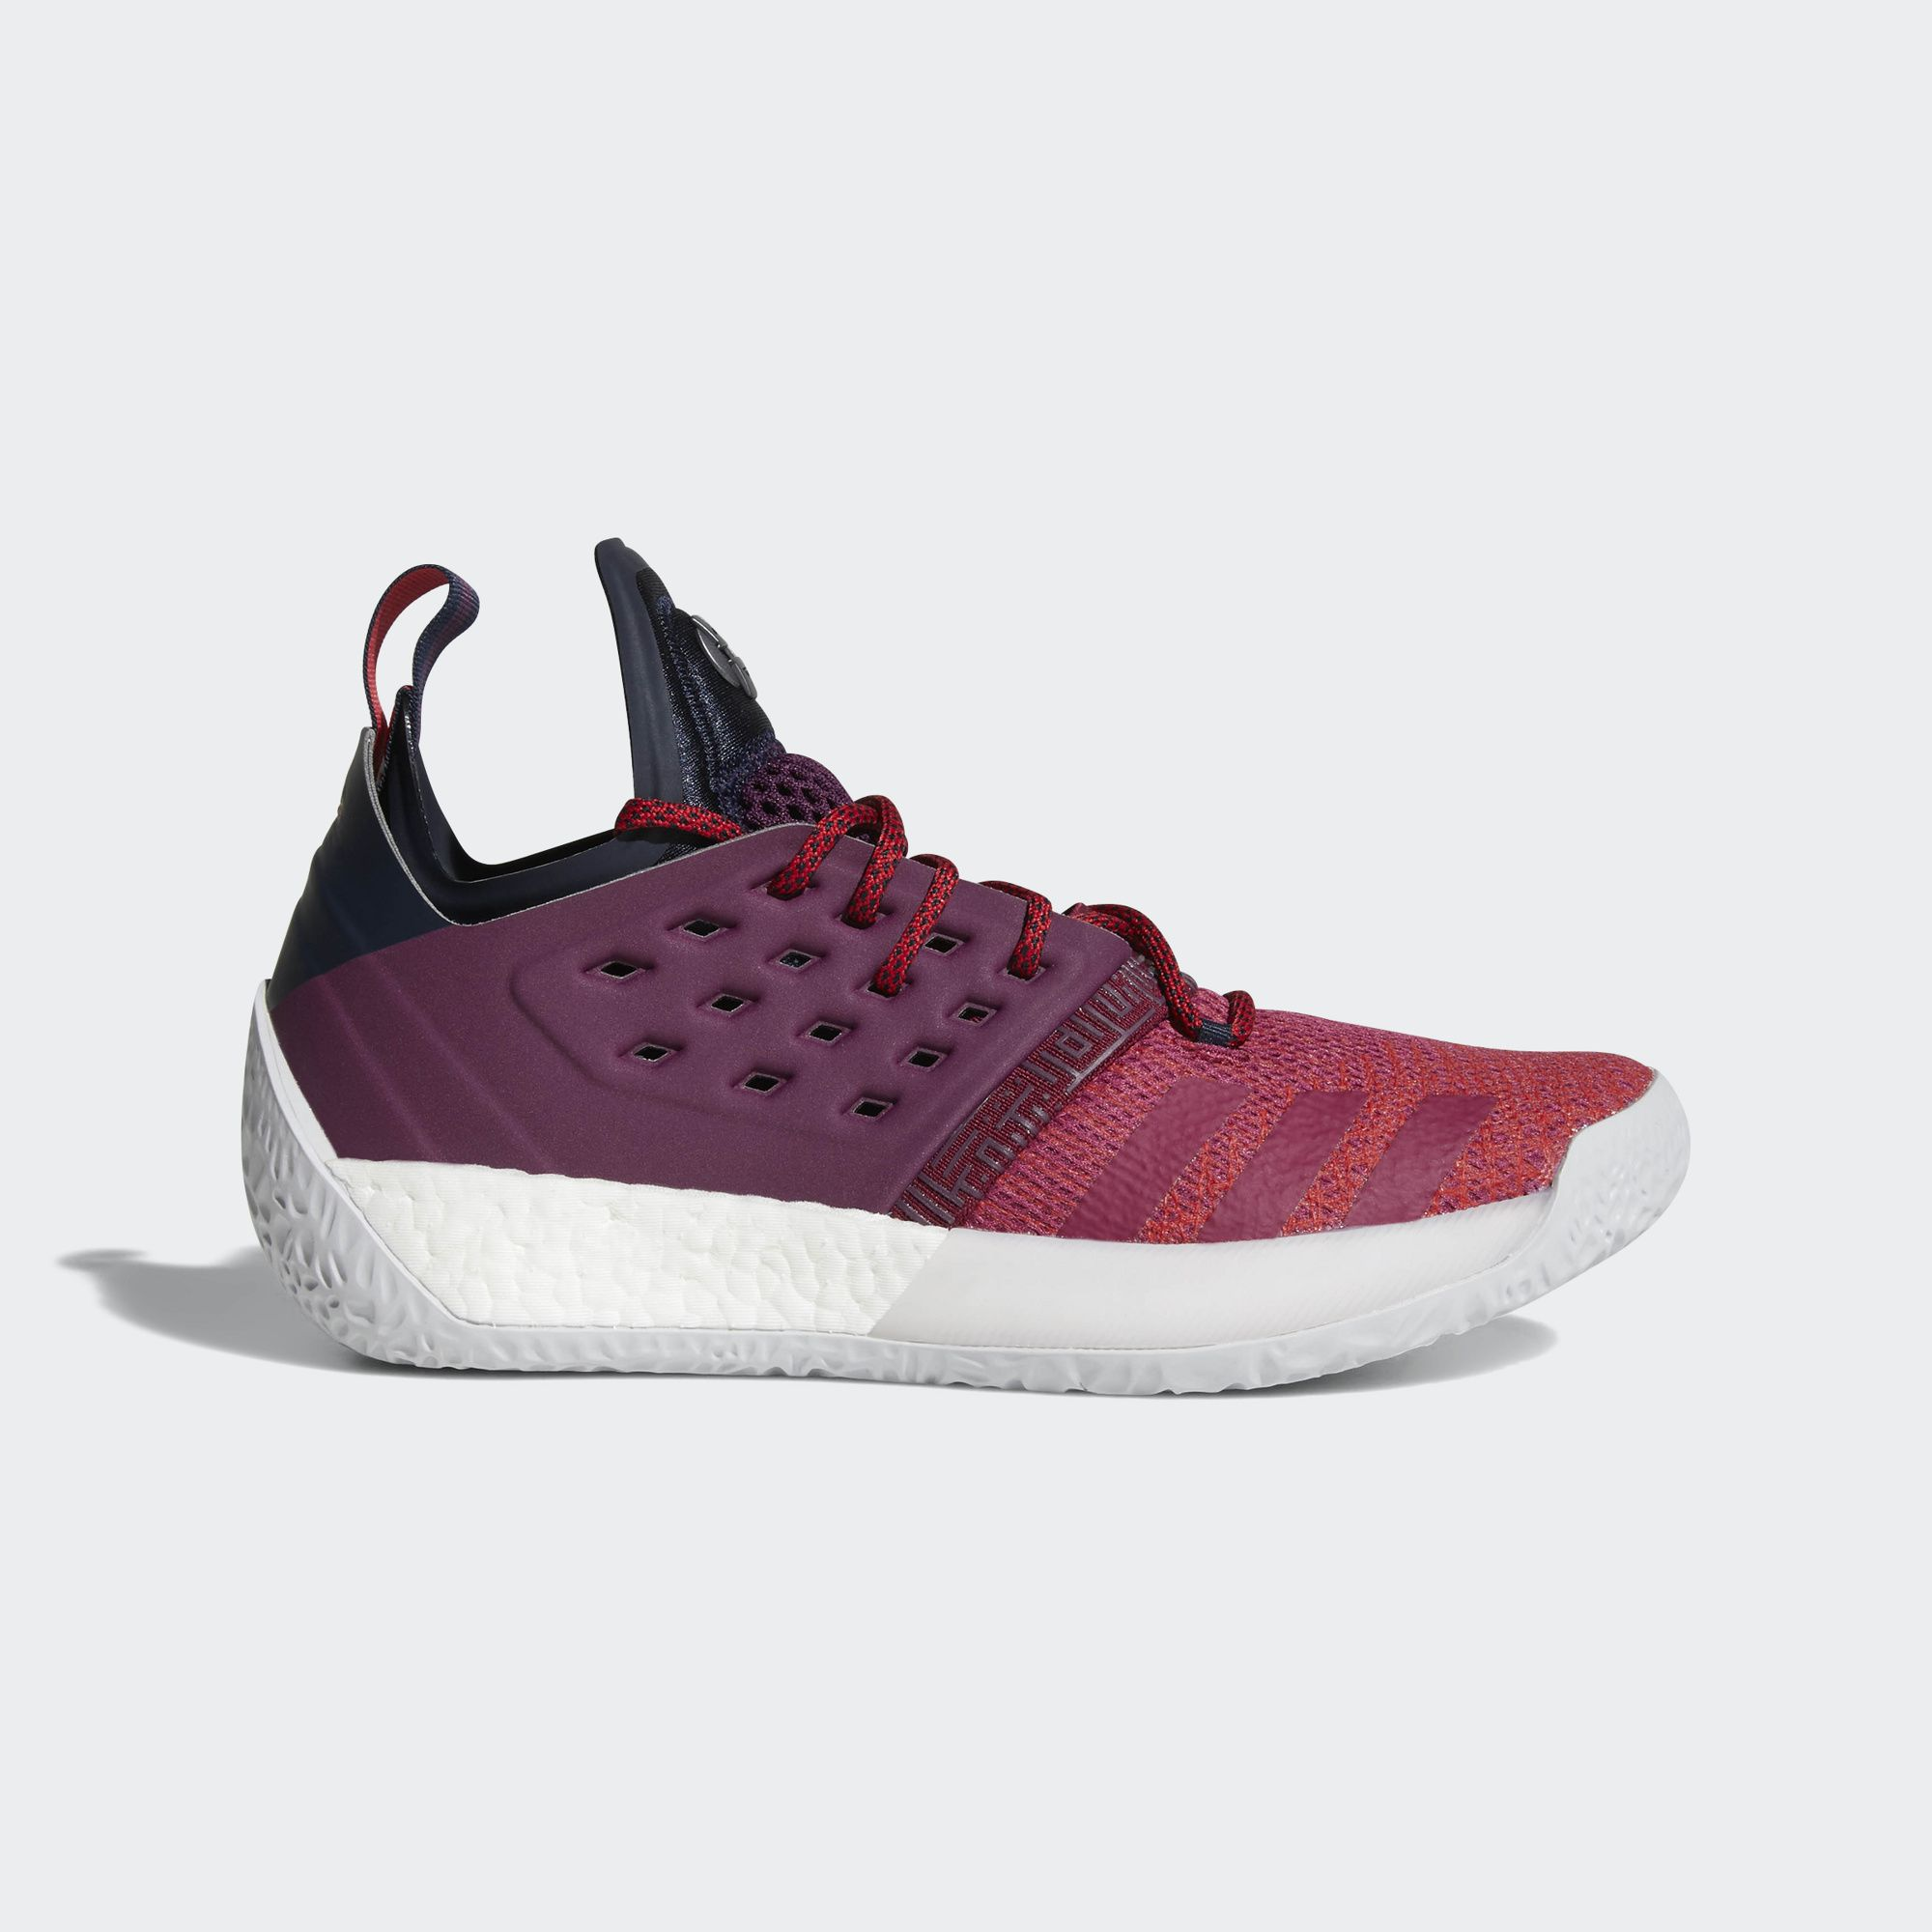 Official Images Of The Adidas Harden Vol 2 Are Finally